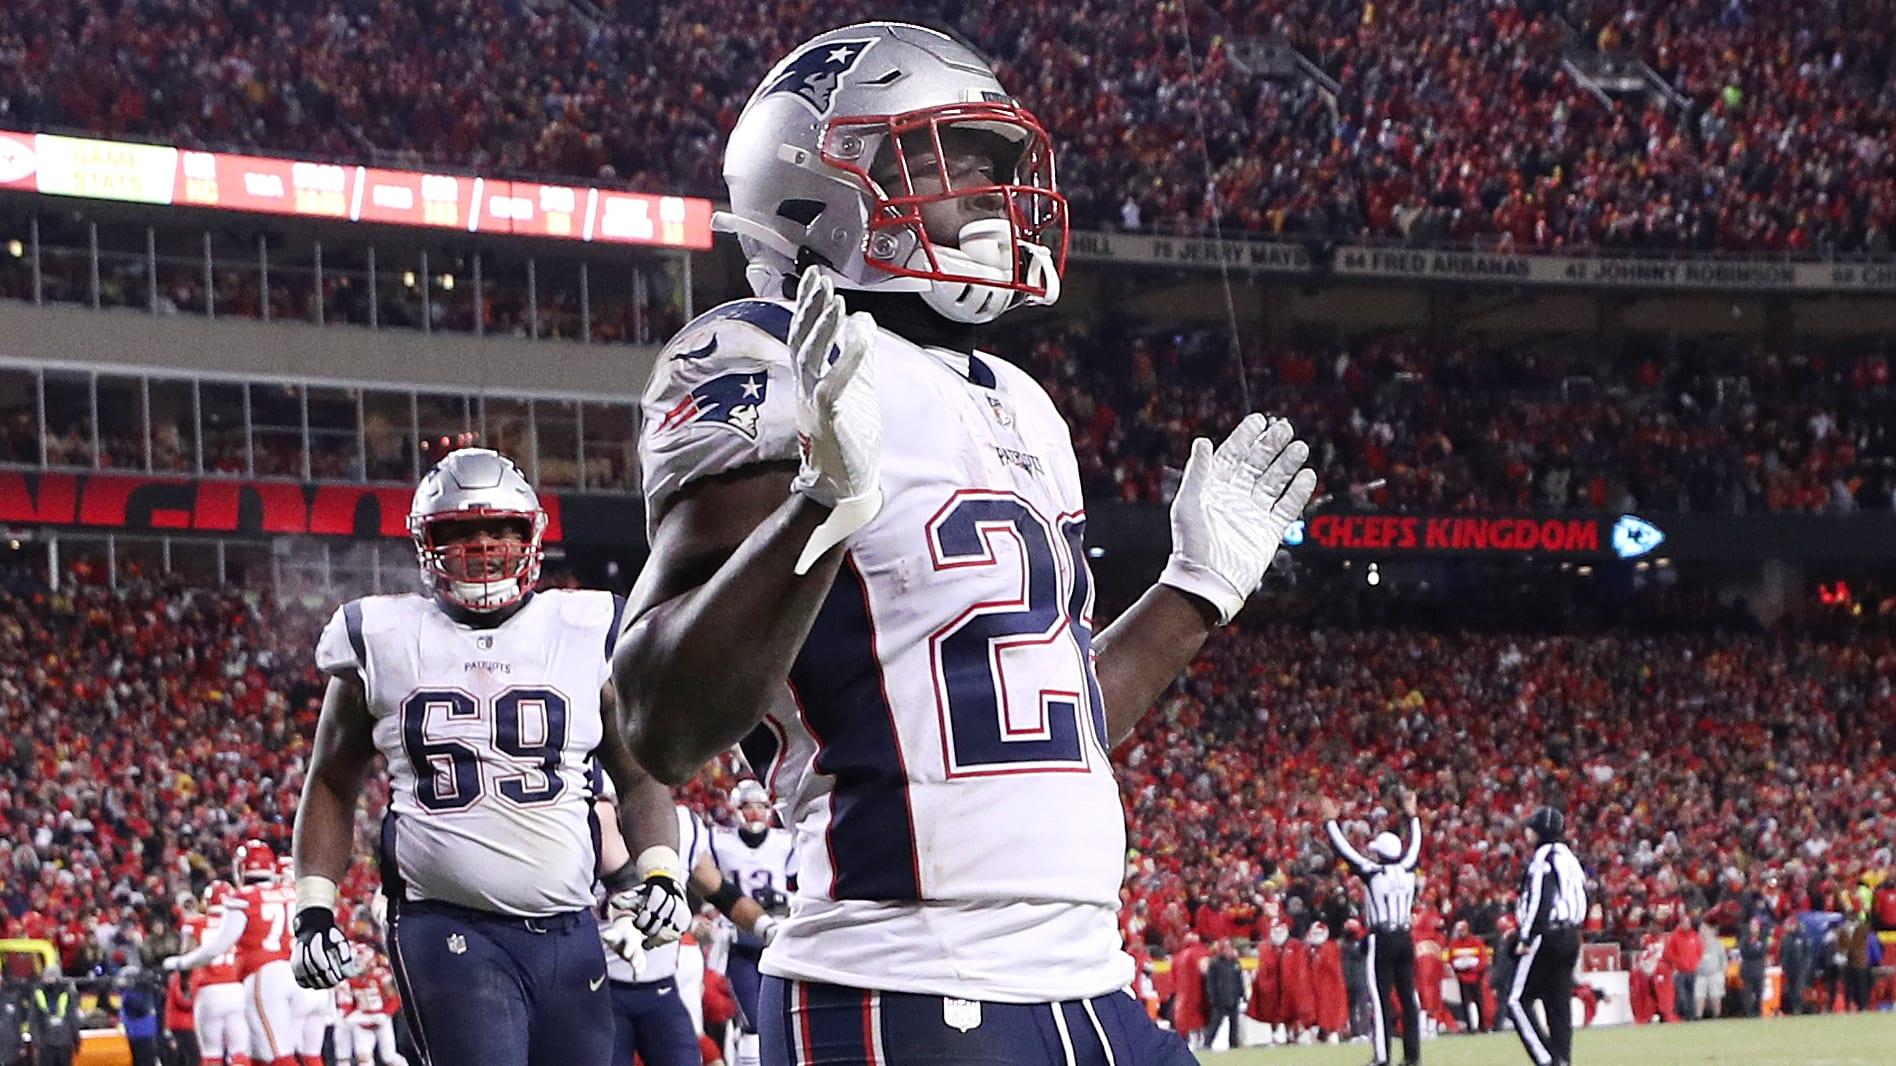 KANSAS CITY, MISSOURI - JANUARY 20: Sony Michel #26 of the New England Patriots celebrates after a touchdown in the fourth quarter against the Kansas City Chiefs during the AFC Championship Game at Arrowhead Stadium on January 20, 2019 in Kansas City, Missouri. (Photo by Patrick Smith/Getty Images)